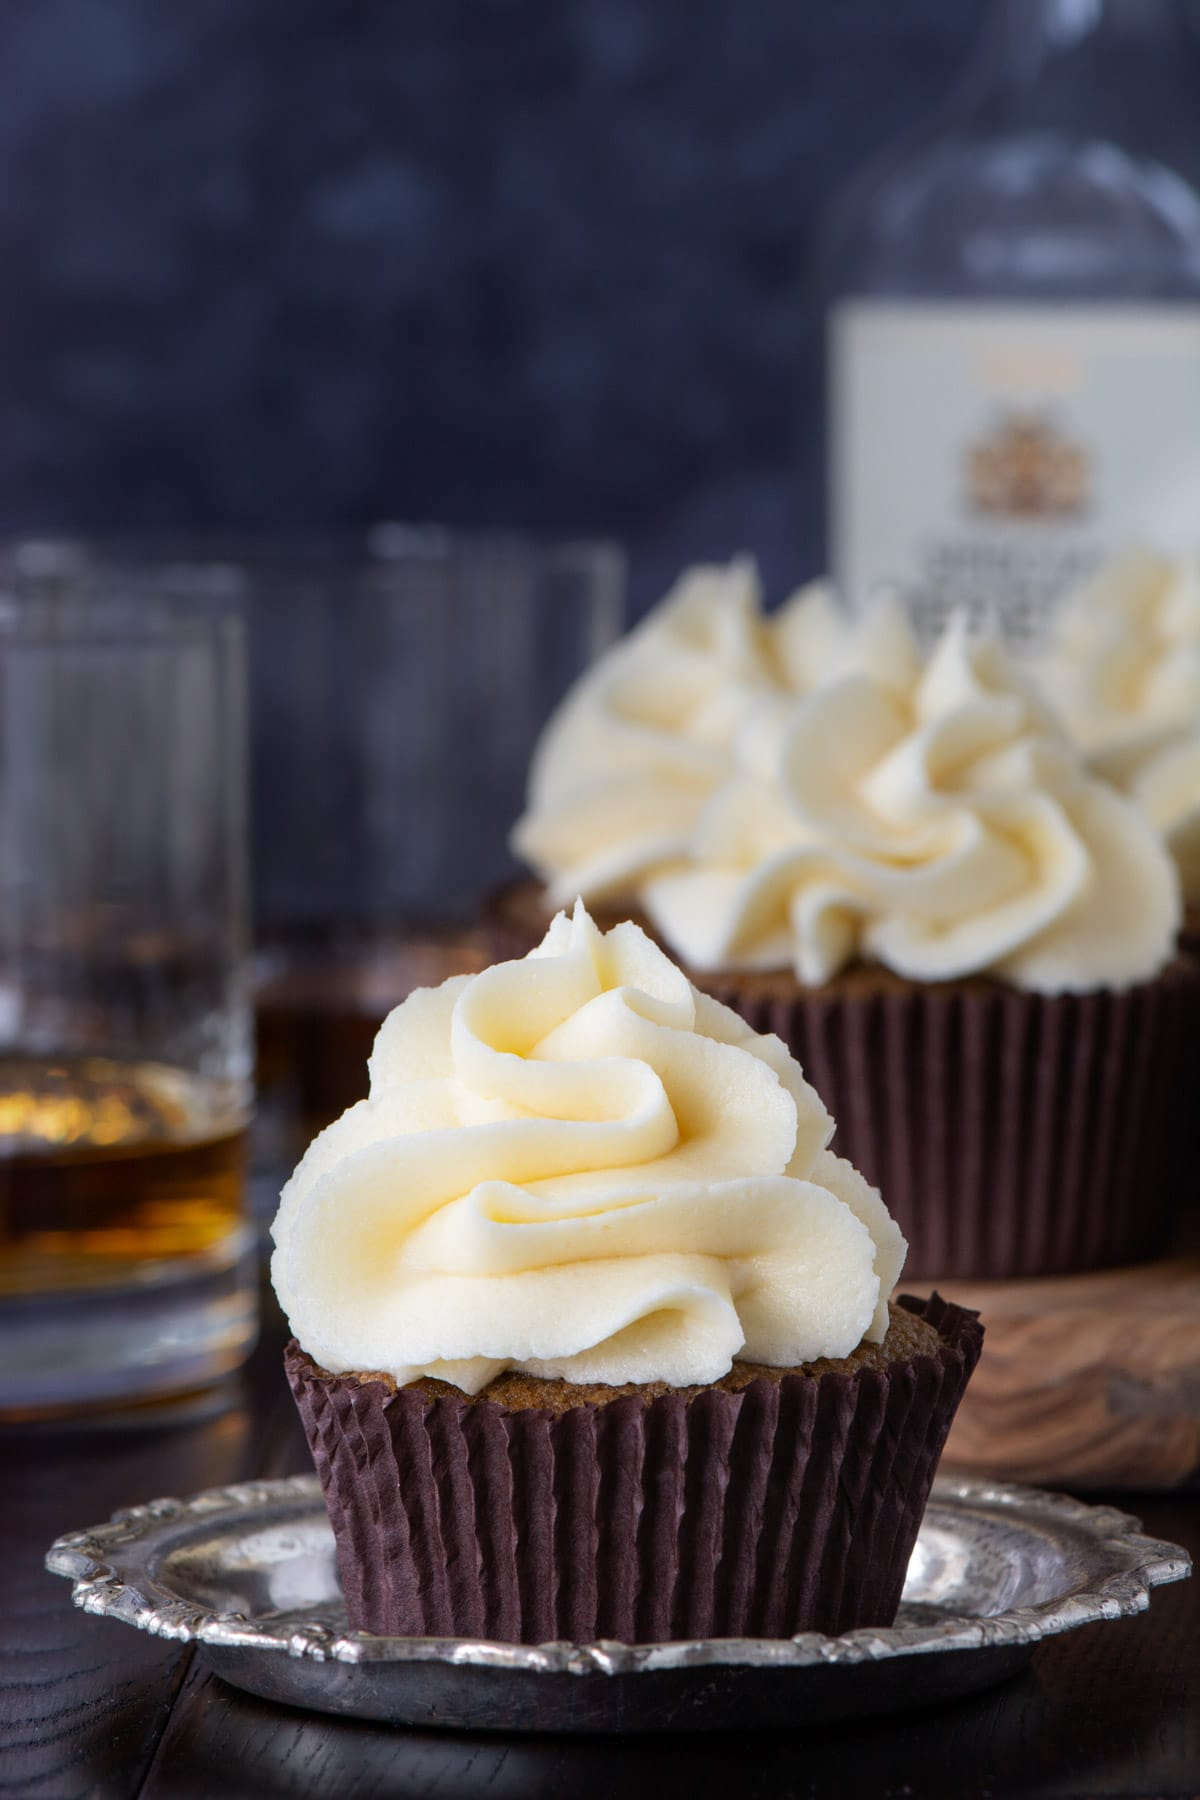 A close up of a coffee cupcakes topped with whiskey buttercream. There are more cupcakes in the background.